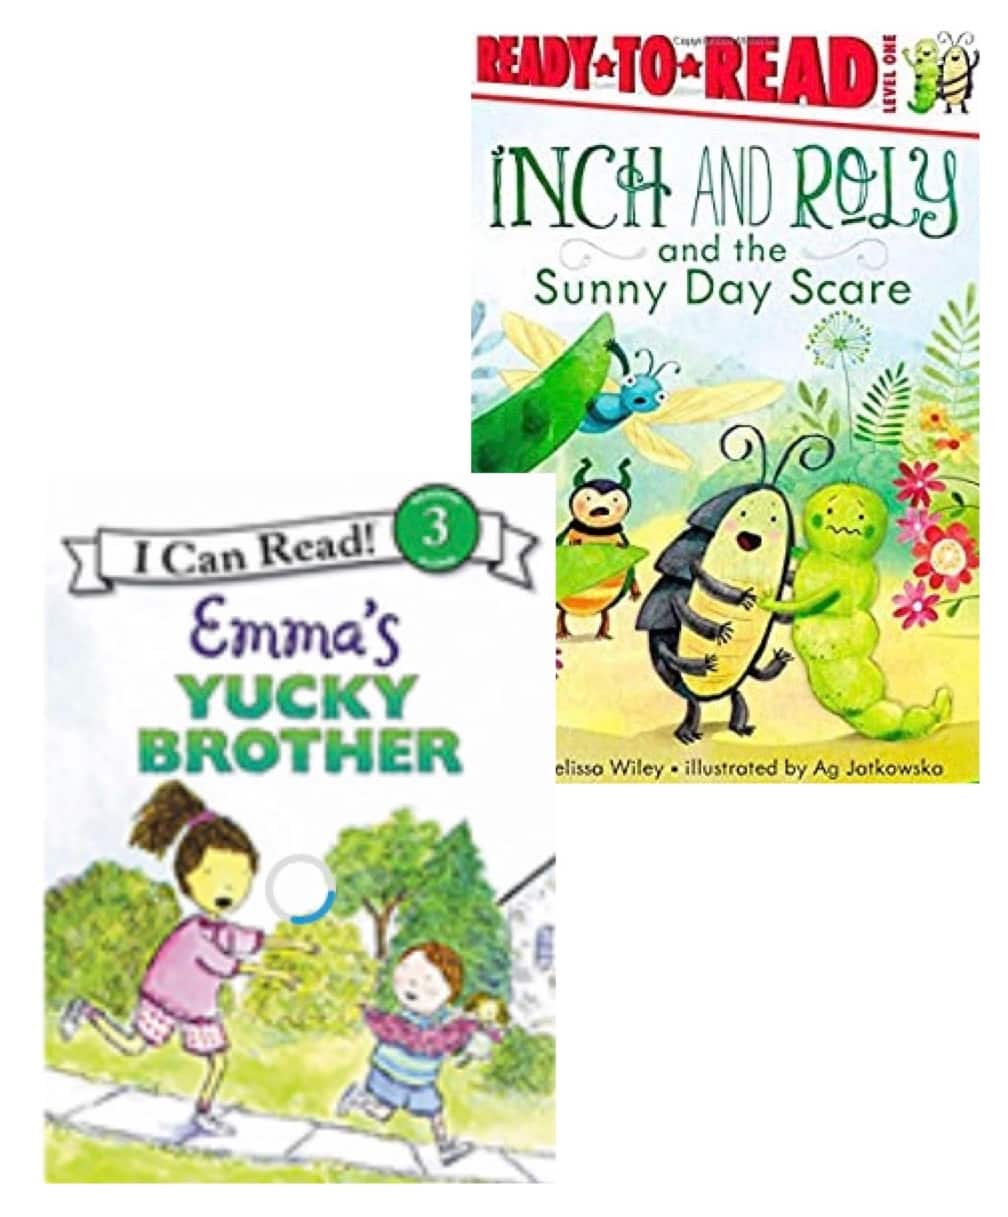 B1G1 50% Books: Children's Books (Emma's Yucky Brother, Inch & Roly and the Sunny Day Scare, More) from 2 for $6 ($3 each) + Free Shipping w/ Prime or on orders $25+